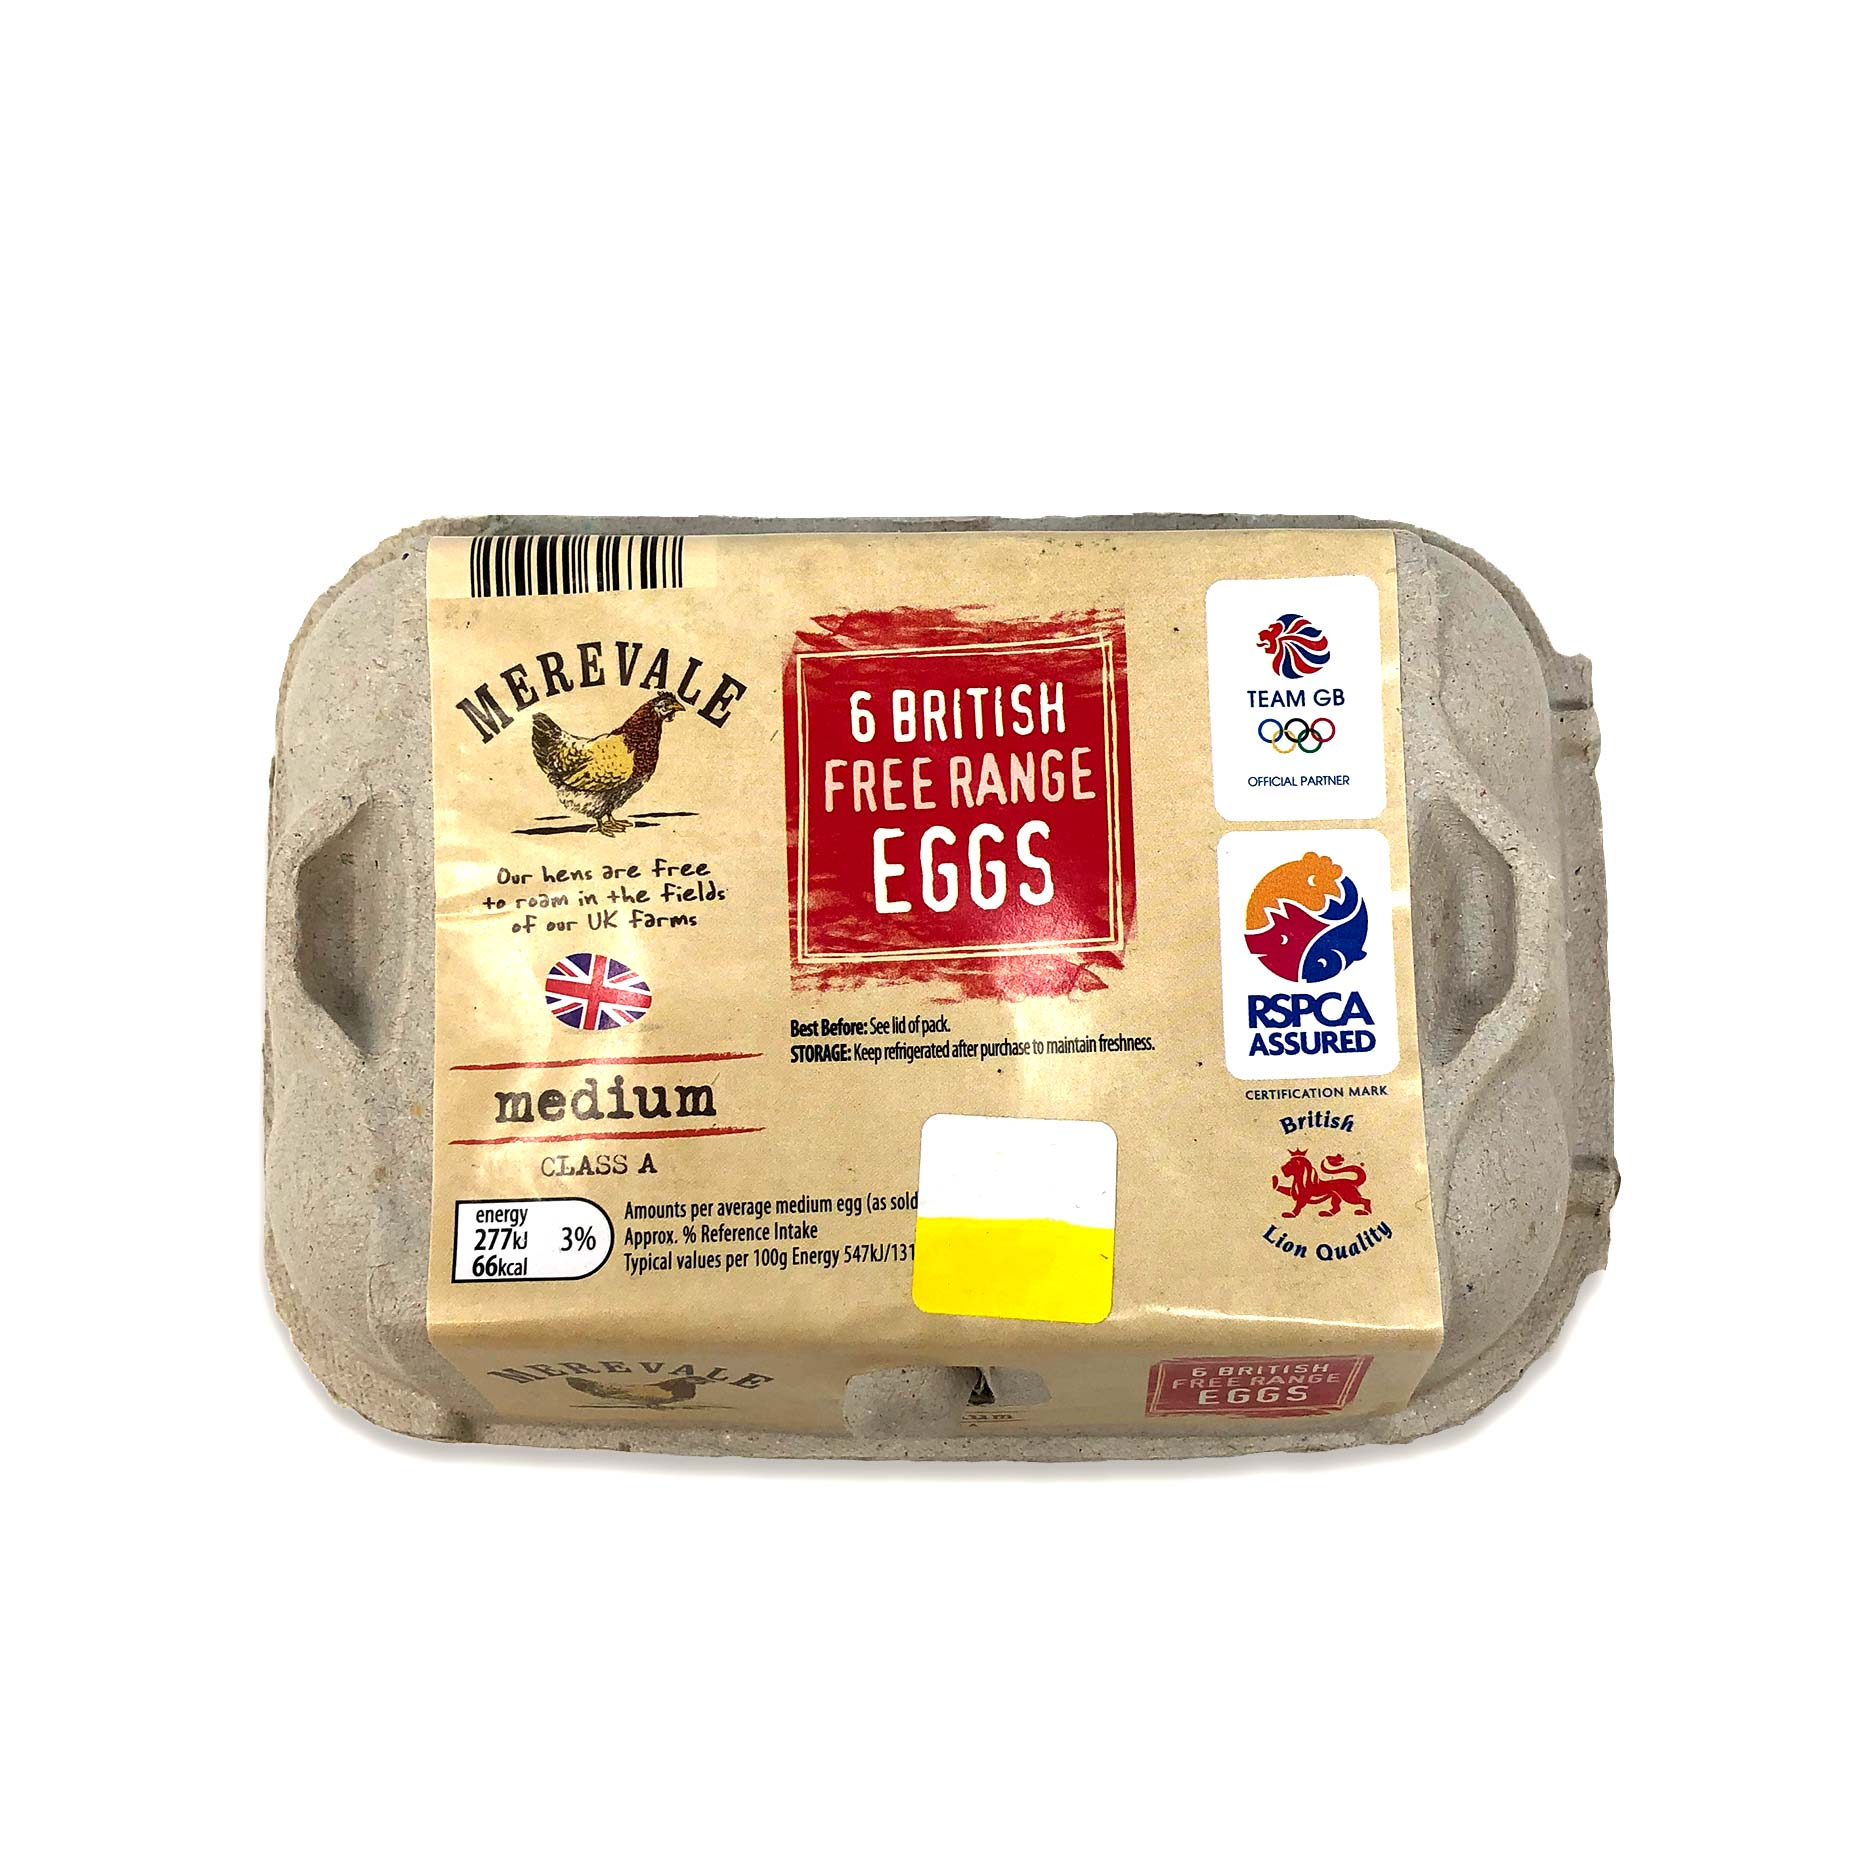 The Food Standards Authority has warned customers with affected eggs, such as this Aldi box above, to cook them thoroughly before eating